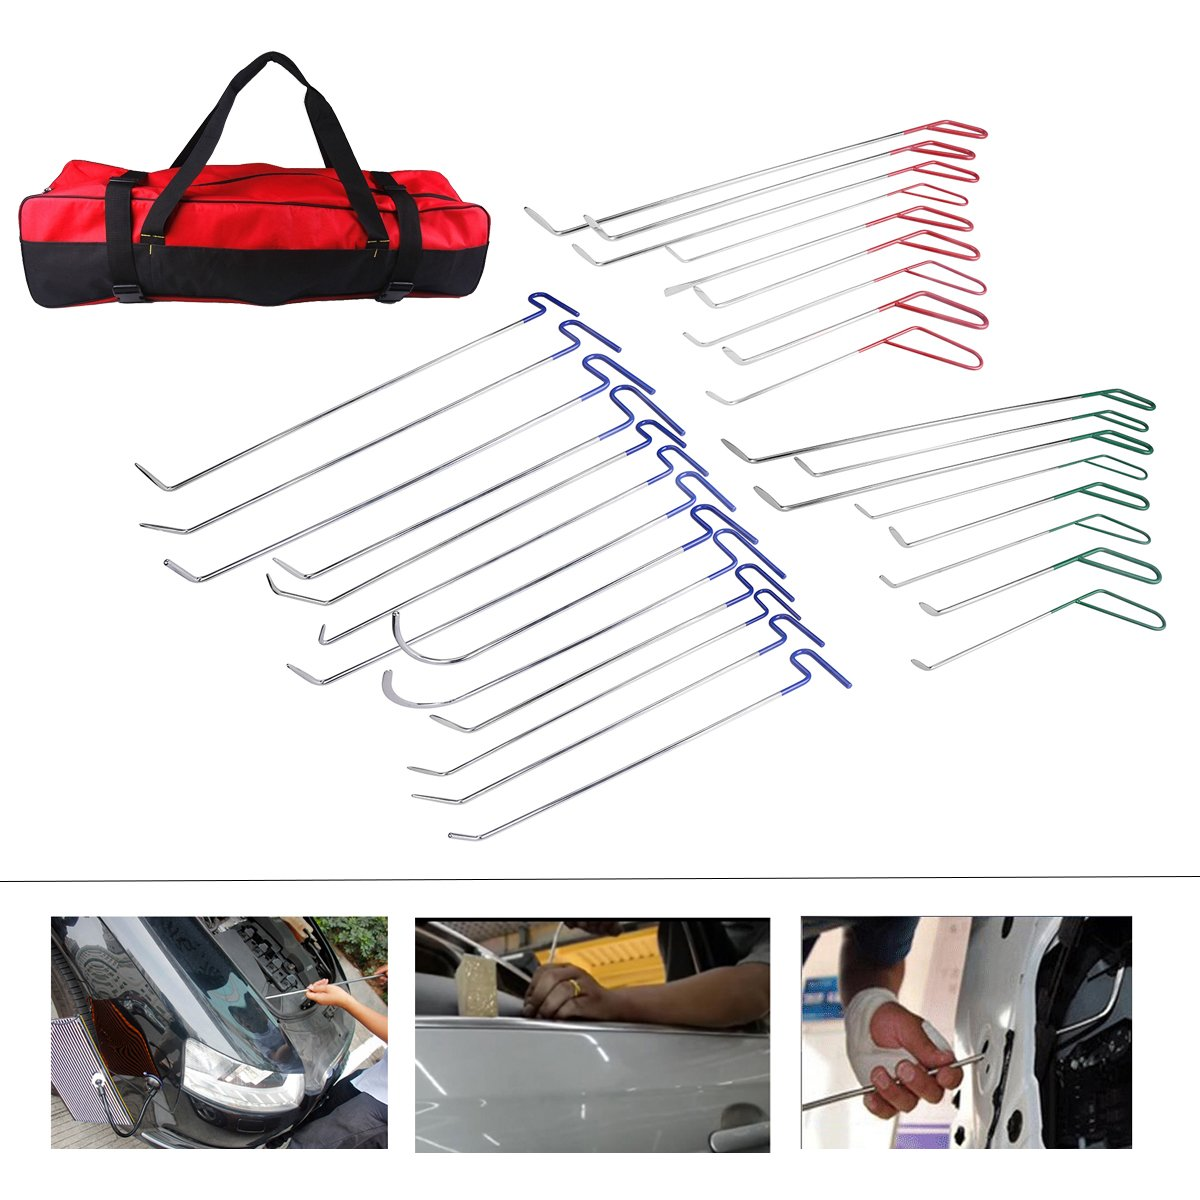 AUTOPDR Car Body Dent Hail Repair PDR Rod Door Dings Tool Kit Set Bag 31pcs